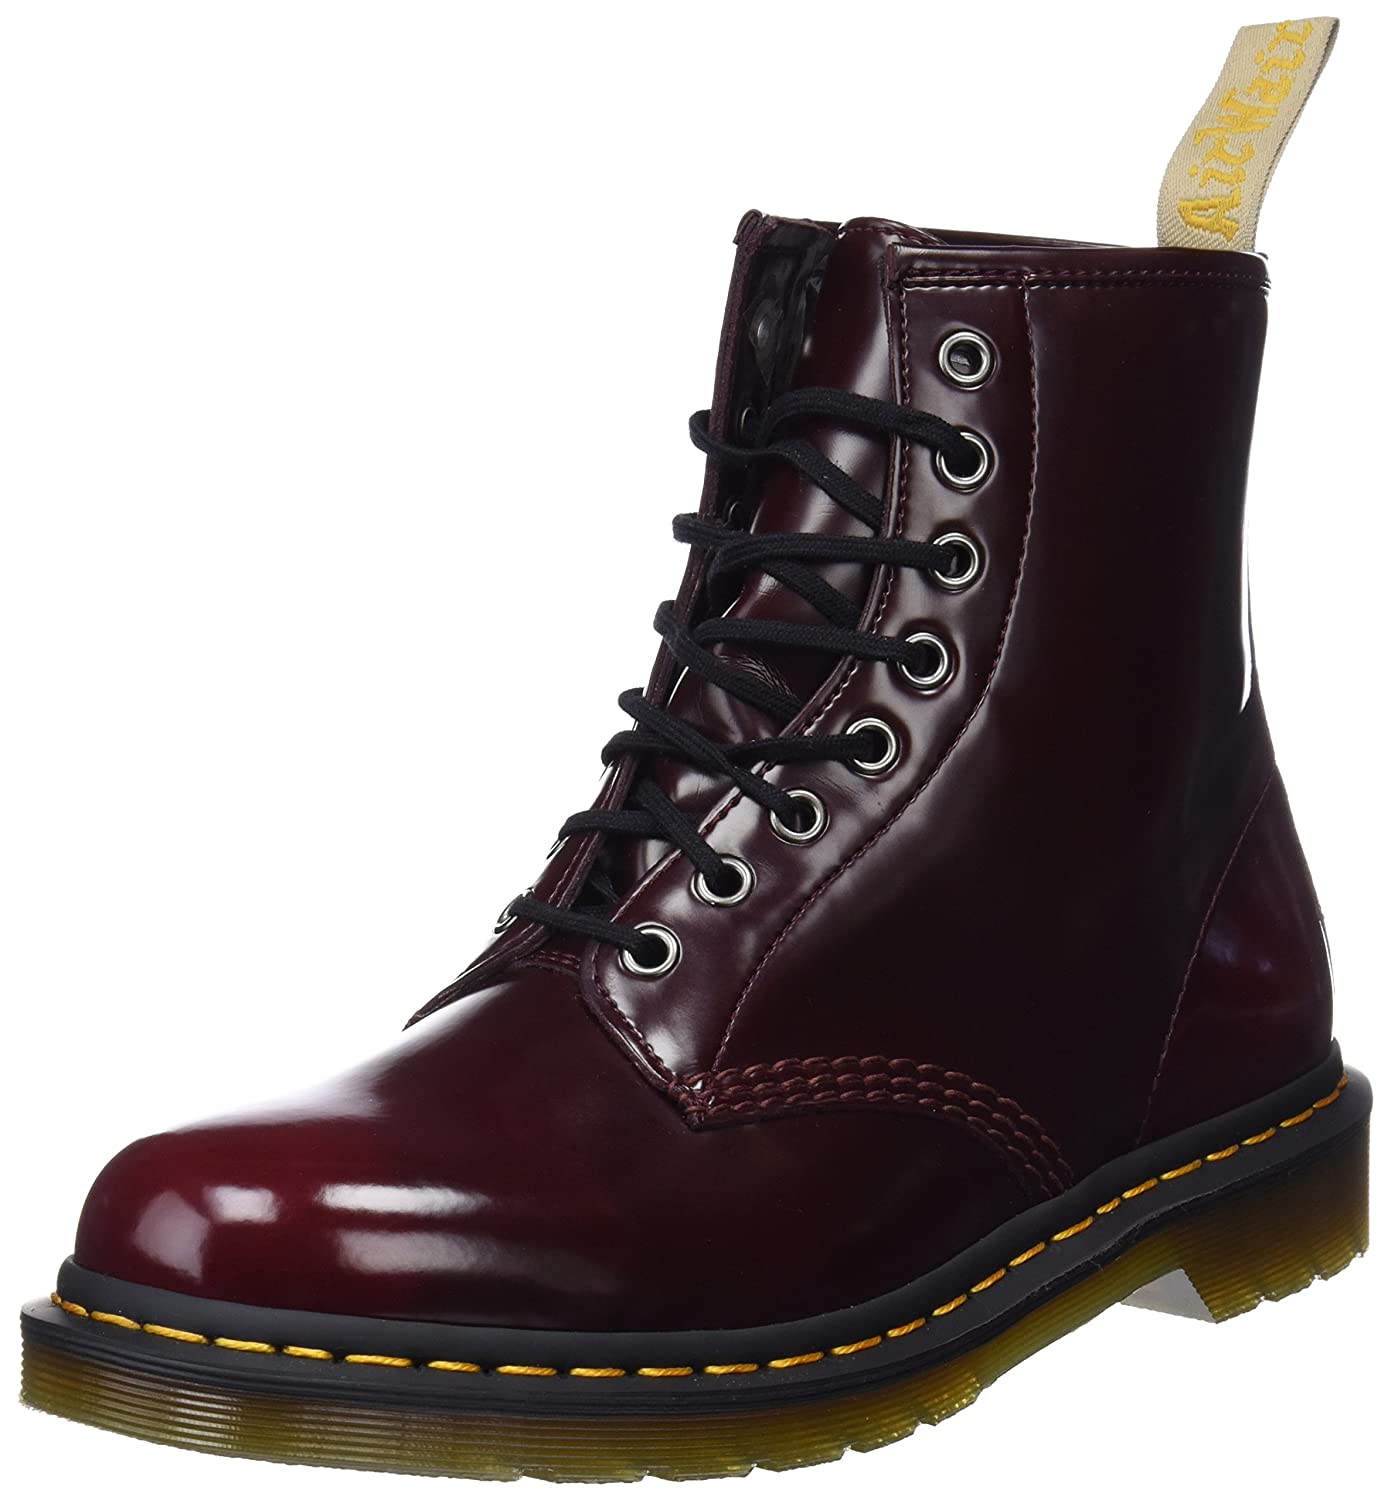 Dr. Martens Vegan 1460 Boot B072MTQV7V 10 M UK|Cherry Red Cambridge Brush